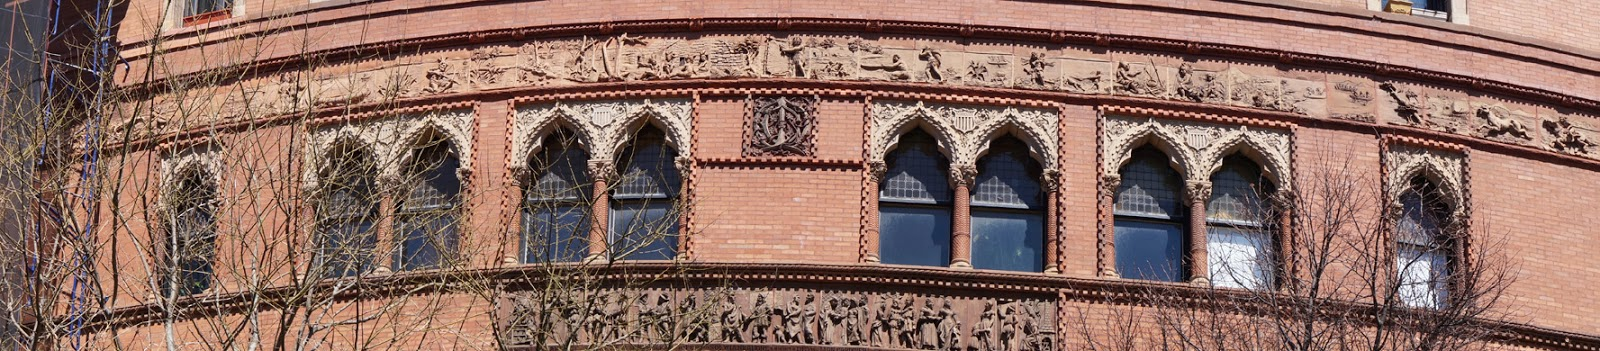 Panoramic image of the terra cotta Montauk Indian narrative ornamentation